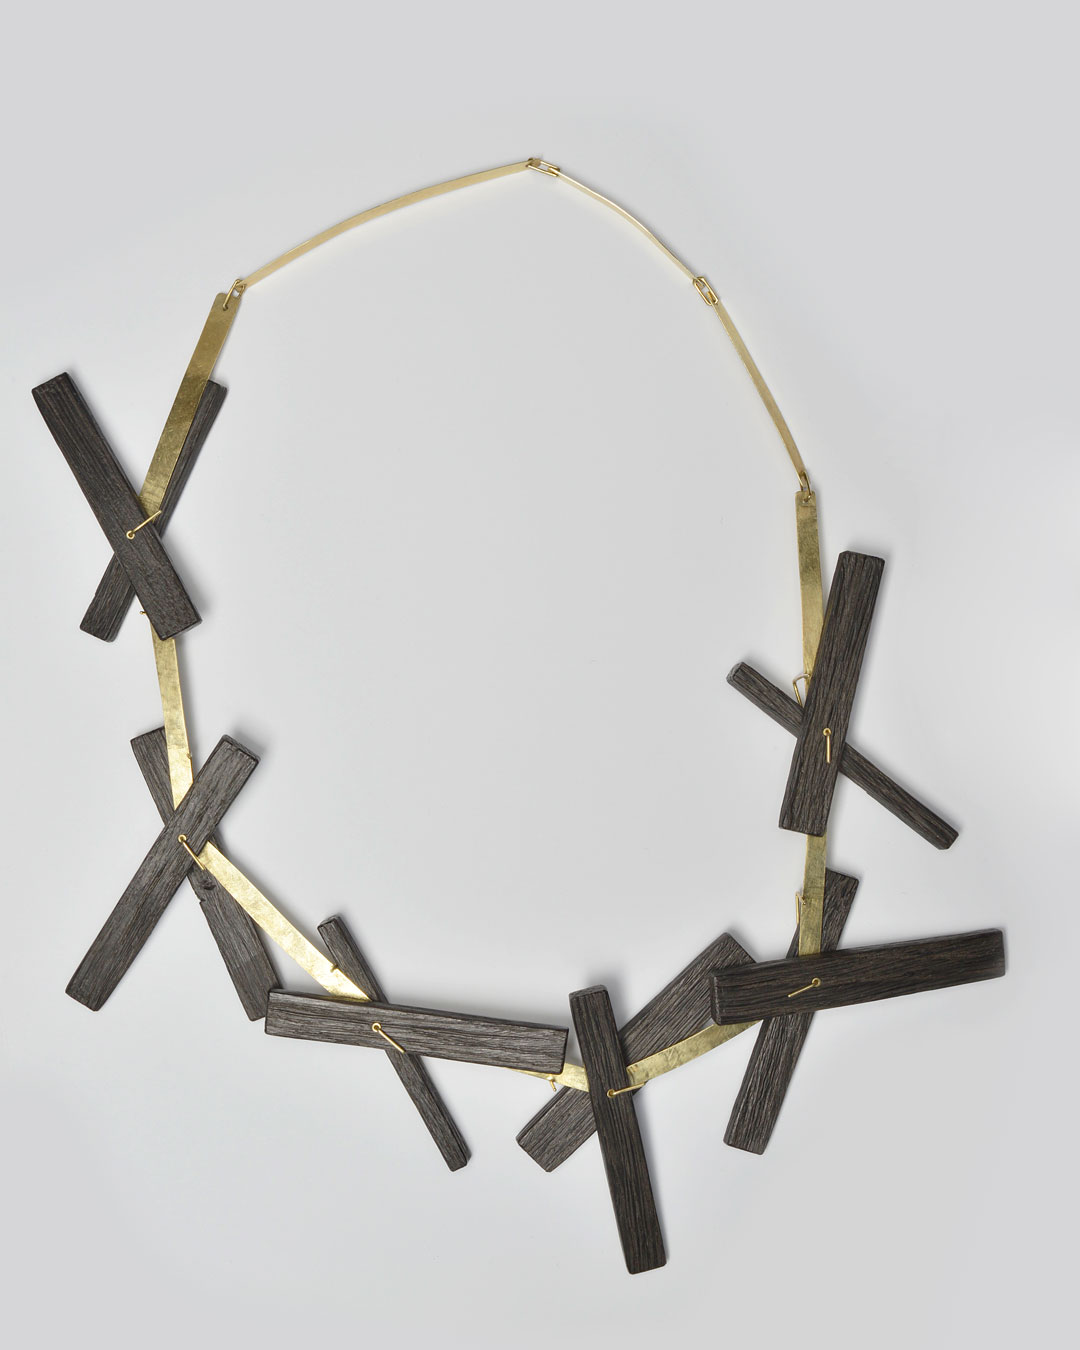 Antje Bräuer, Kreuze II (Crosses II), 2017, necklace; bog oak from the Elbe, 14ct gold, 350 x 200 x 20 mm, €8480